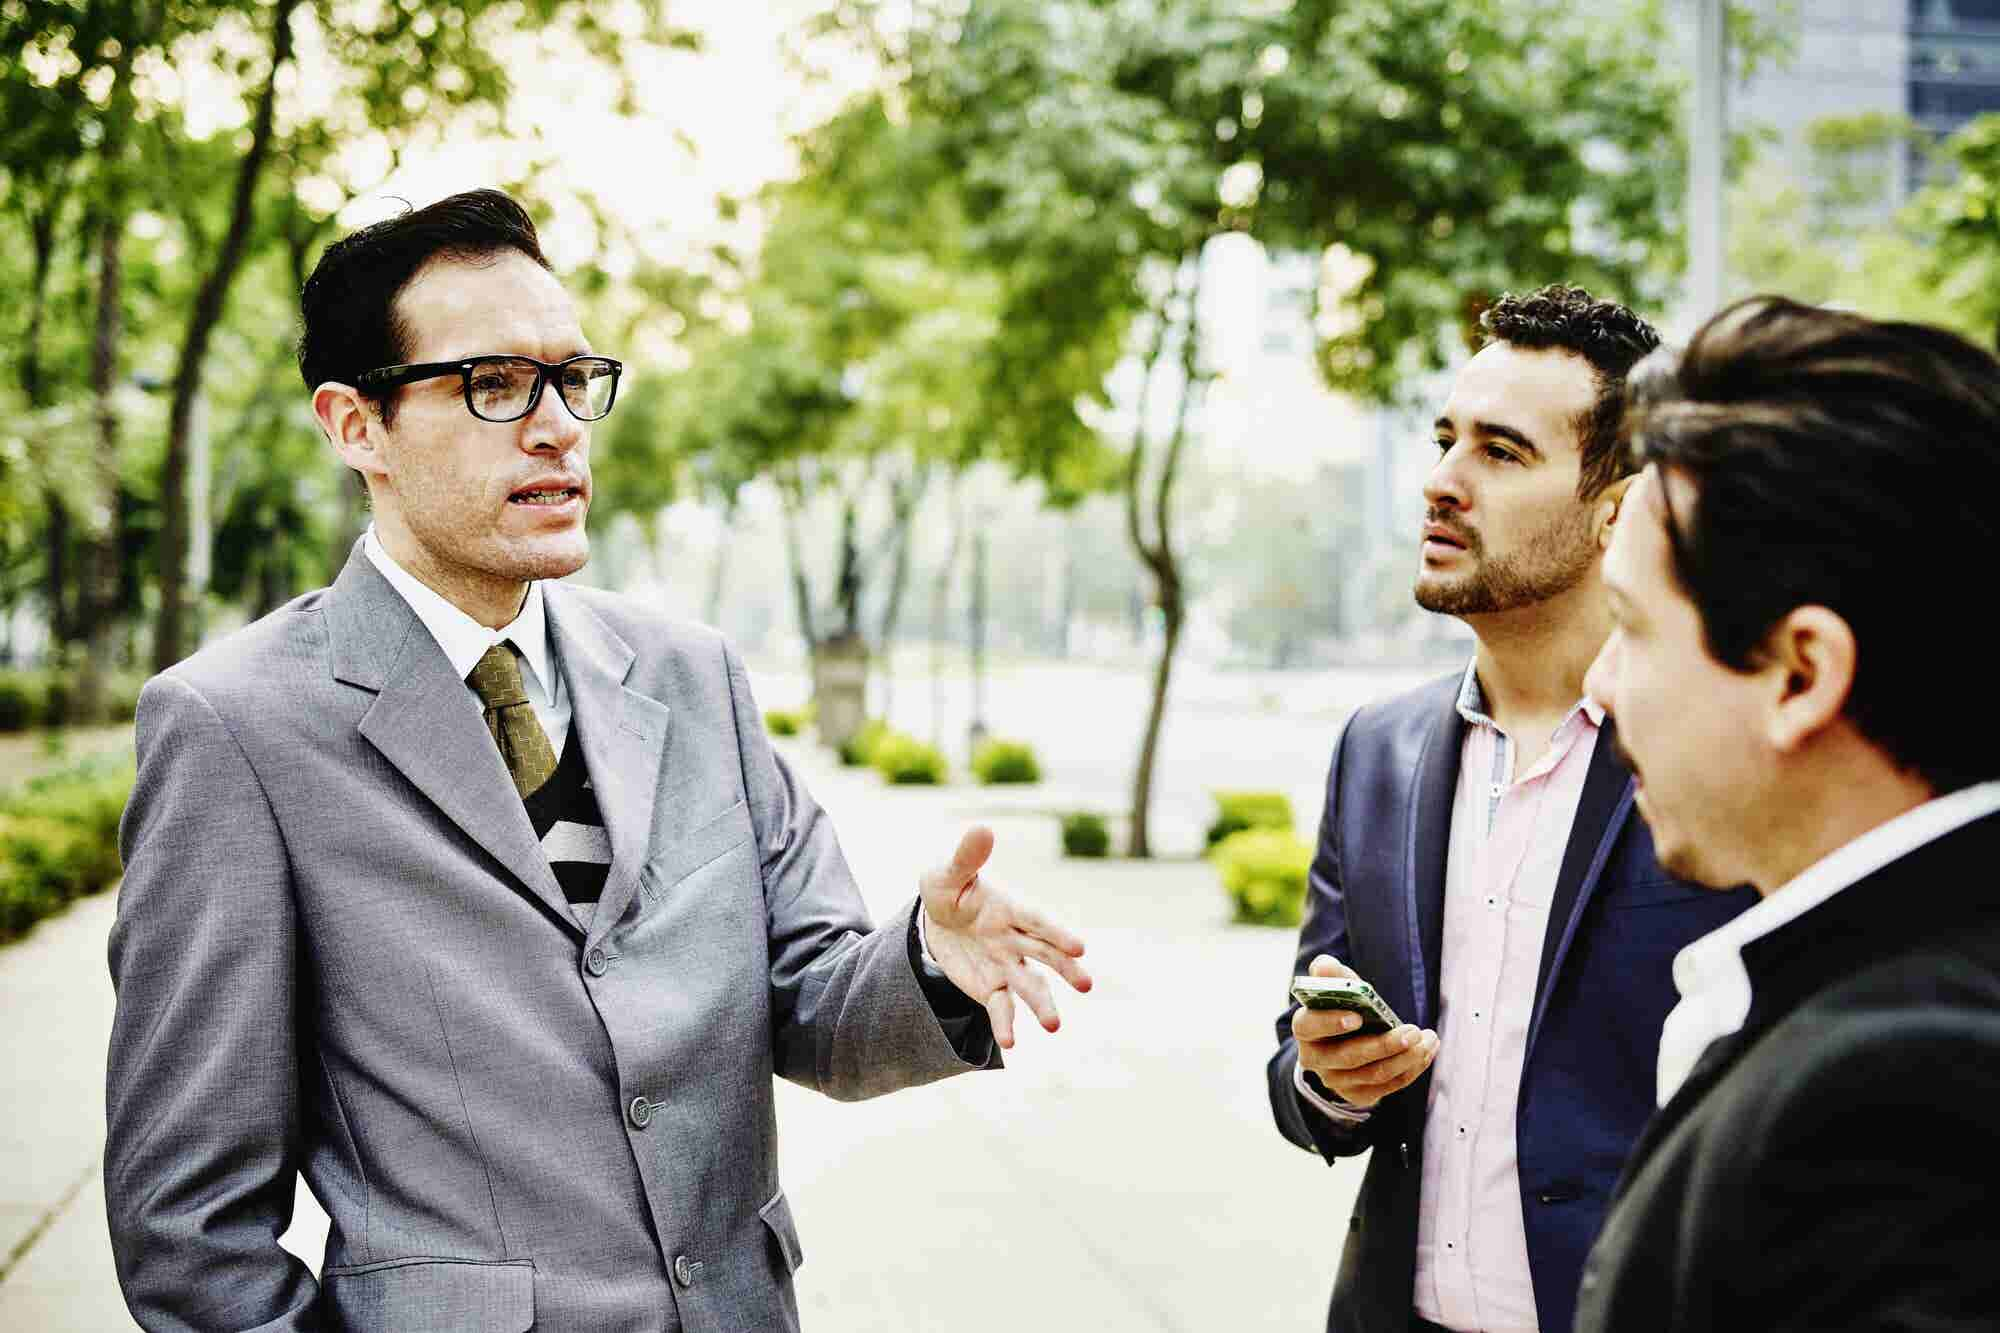 You Can't Build Your Business on Bartering and Free Information